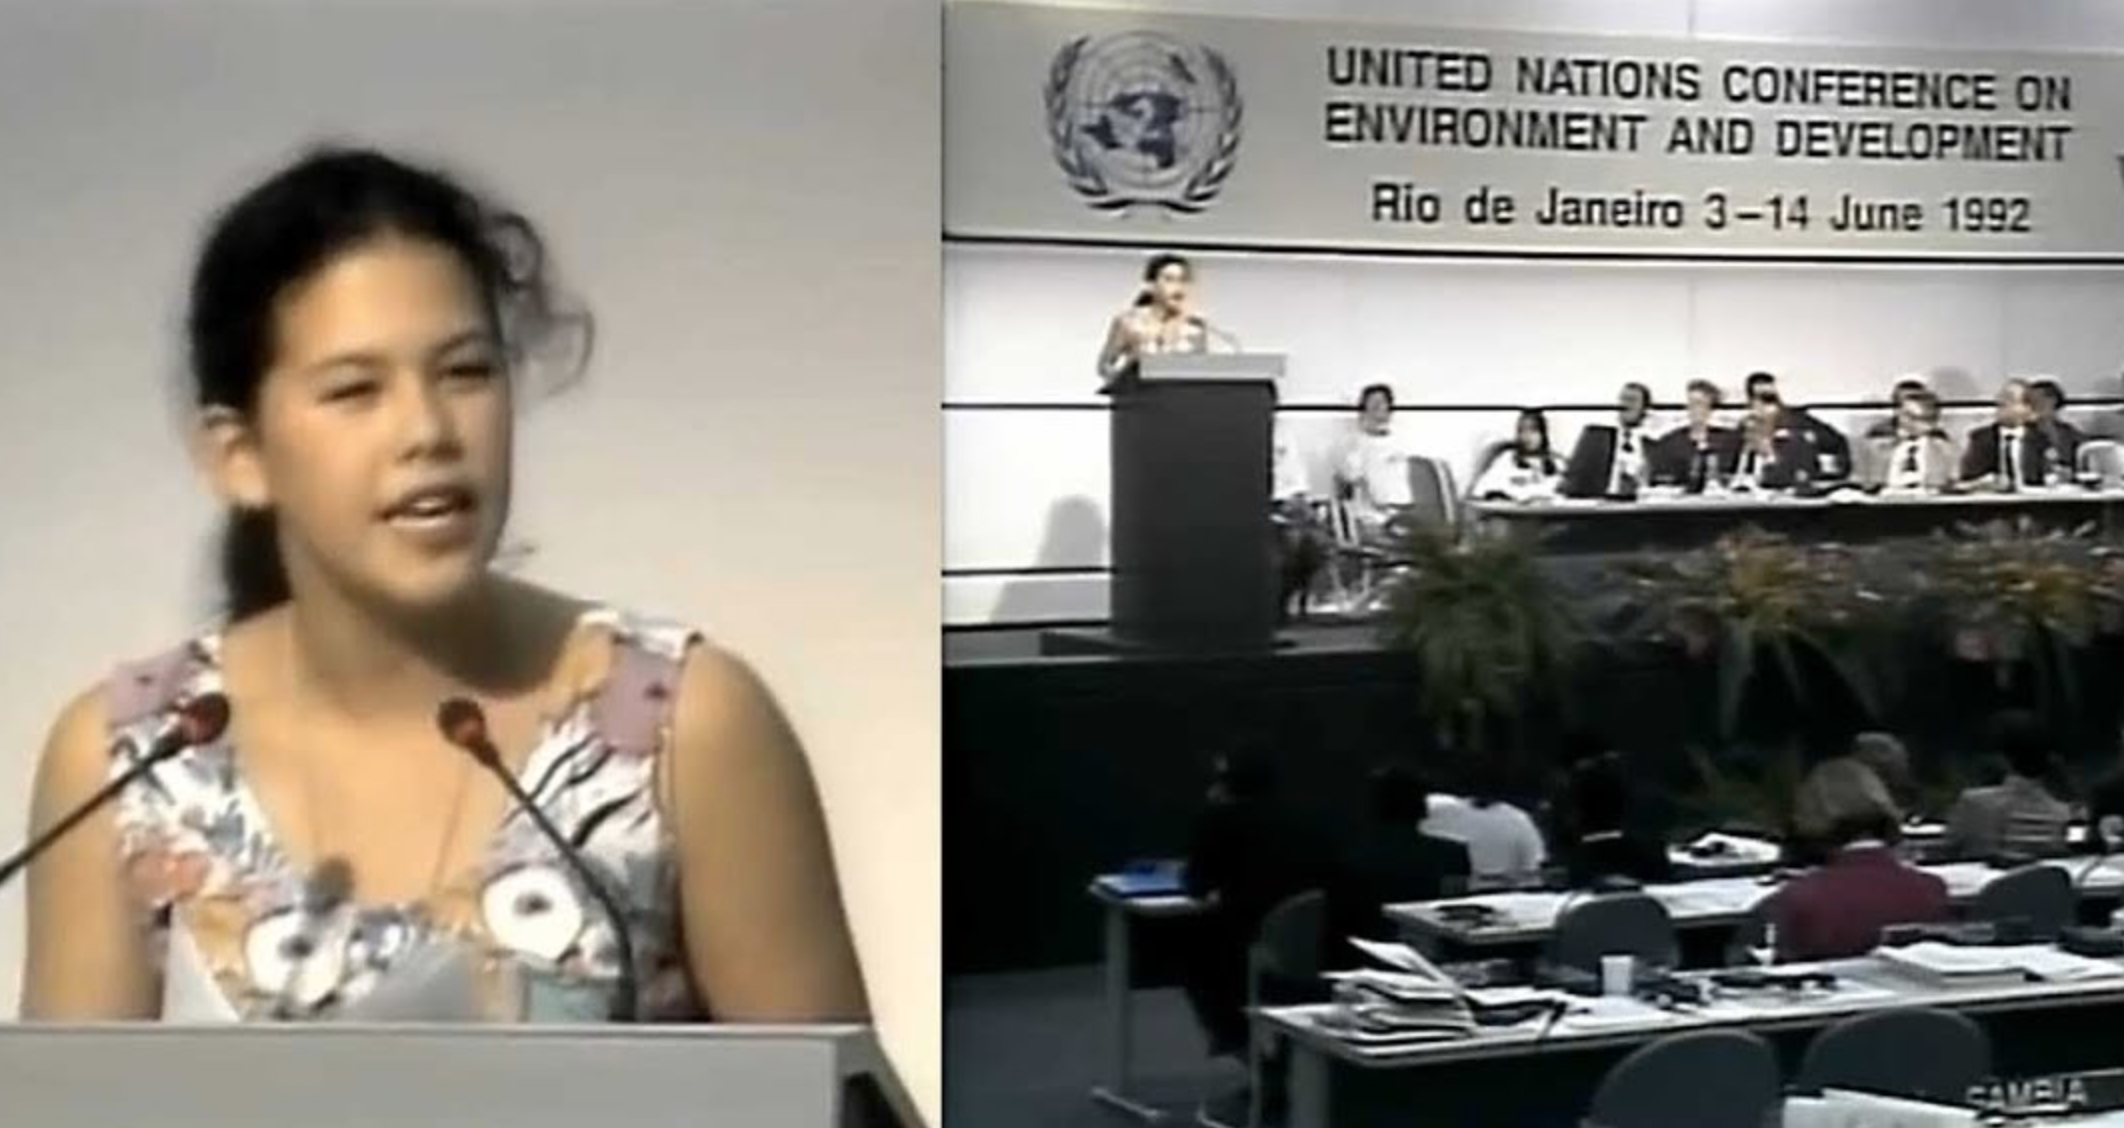 Before Greta Thunberg Spoke About Saving The Planet, There Was Severn Suzuki At The Rio Summit In 1992